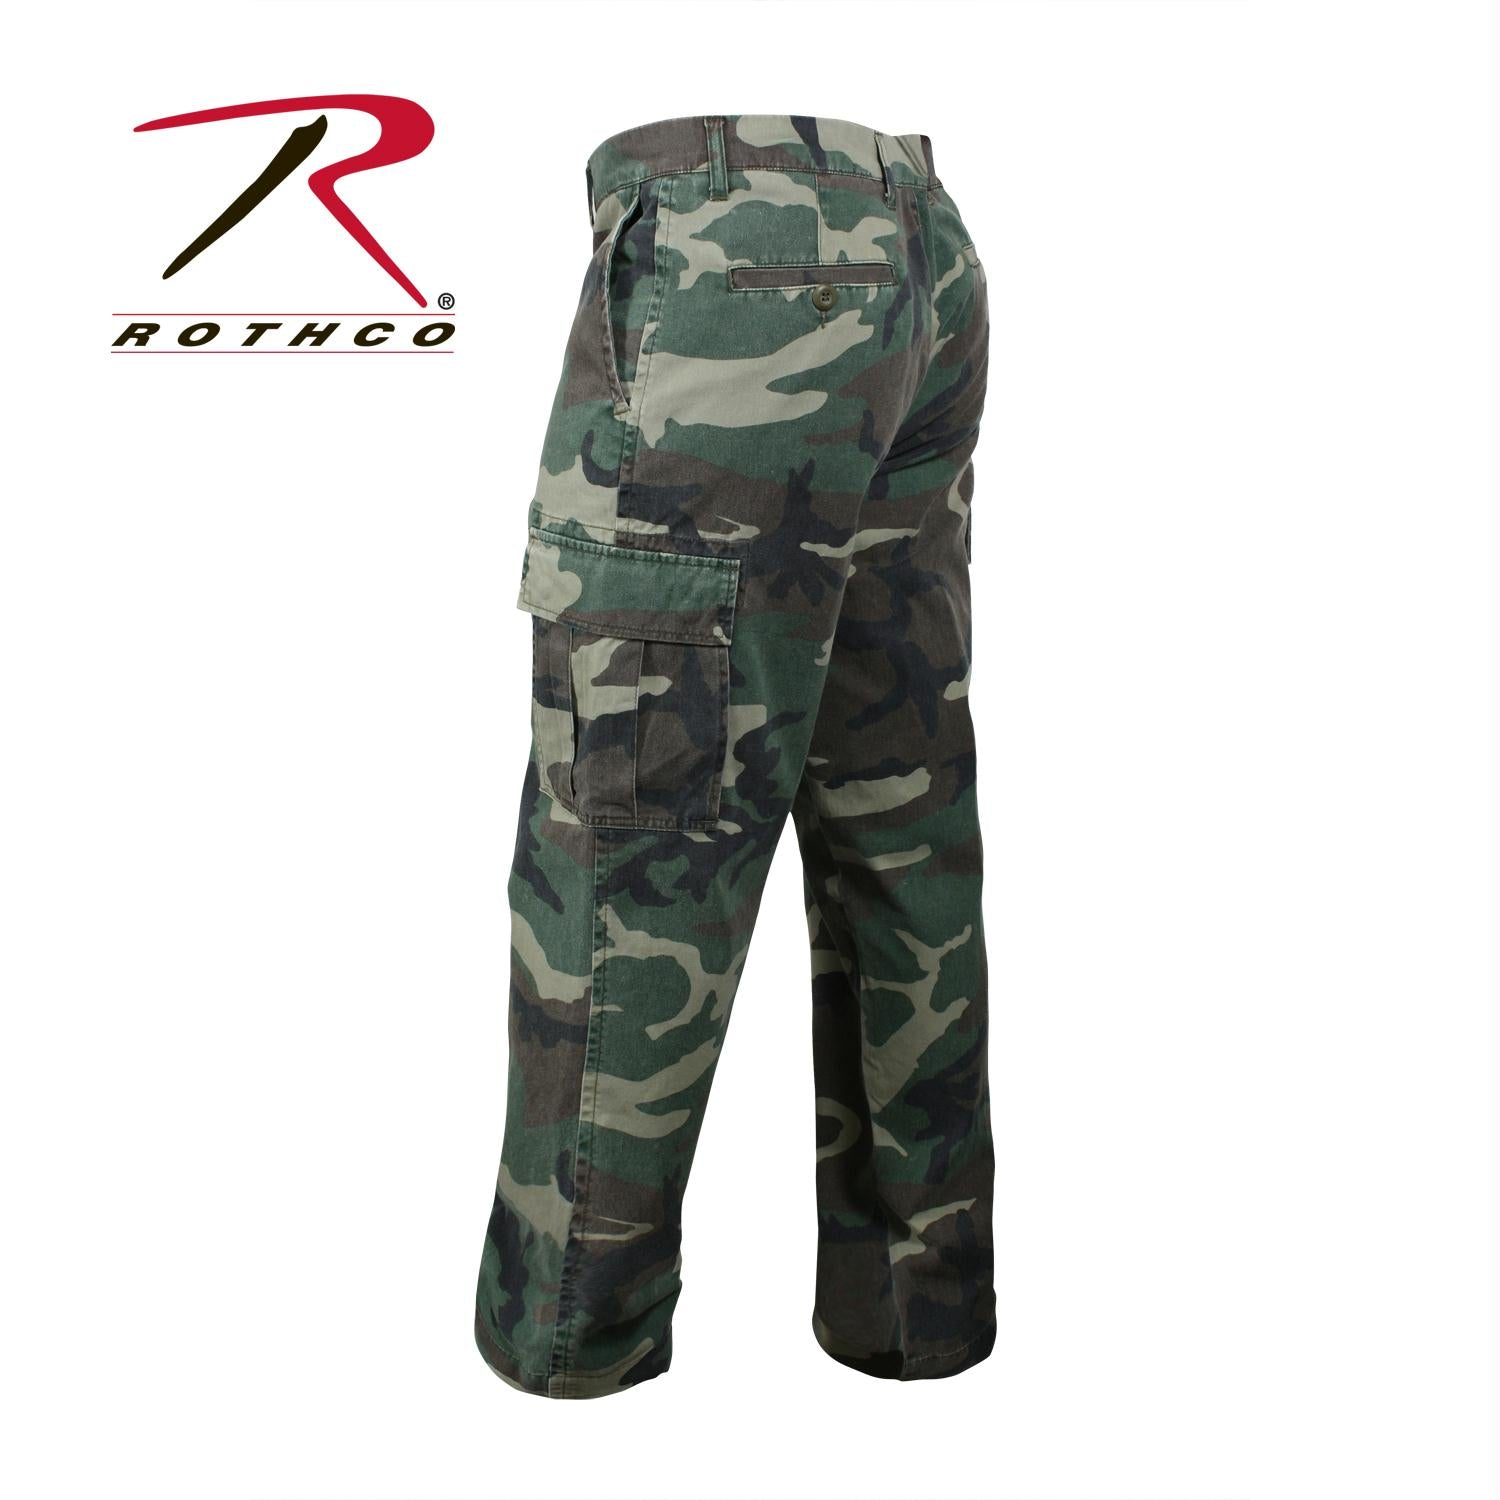 Rothco Vintage 6-Pocket Flat Front Fatigue Pants - Woodland Camo / 32